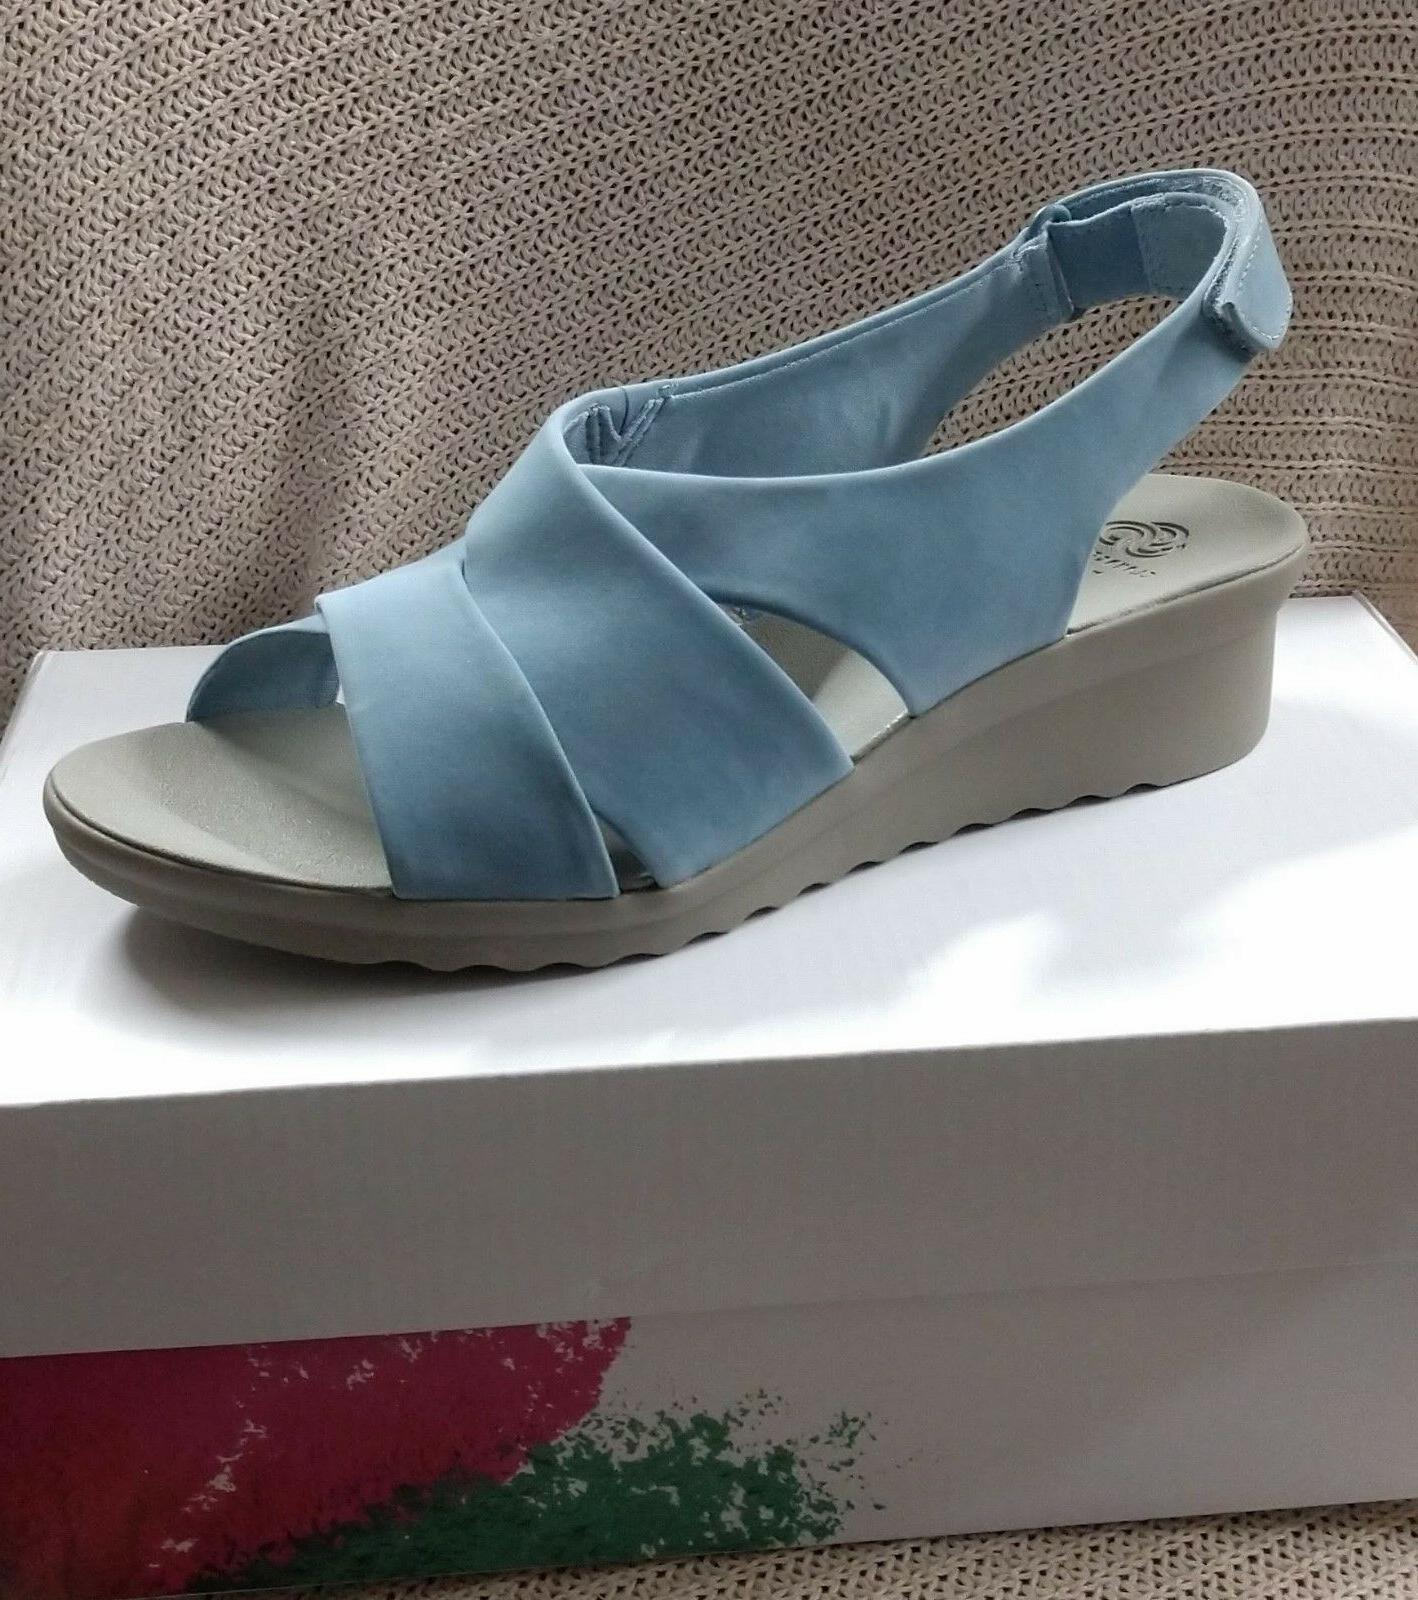 CLOUDSTEPPERS Bright Wedge Sandals